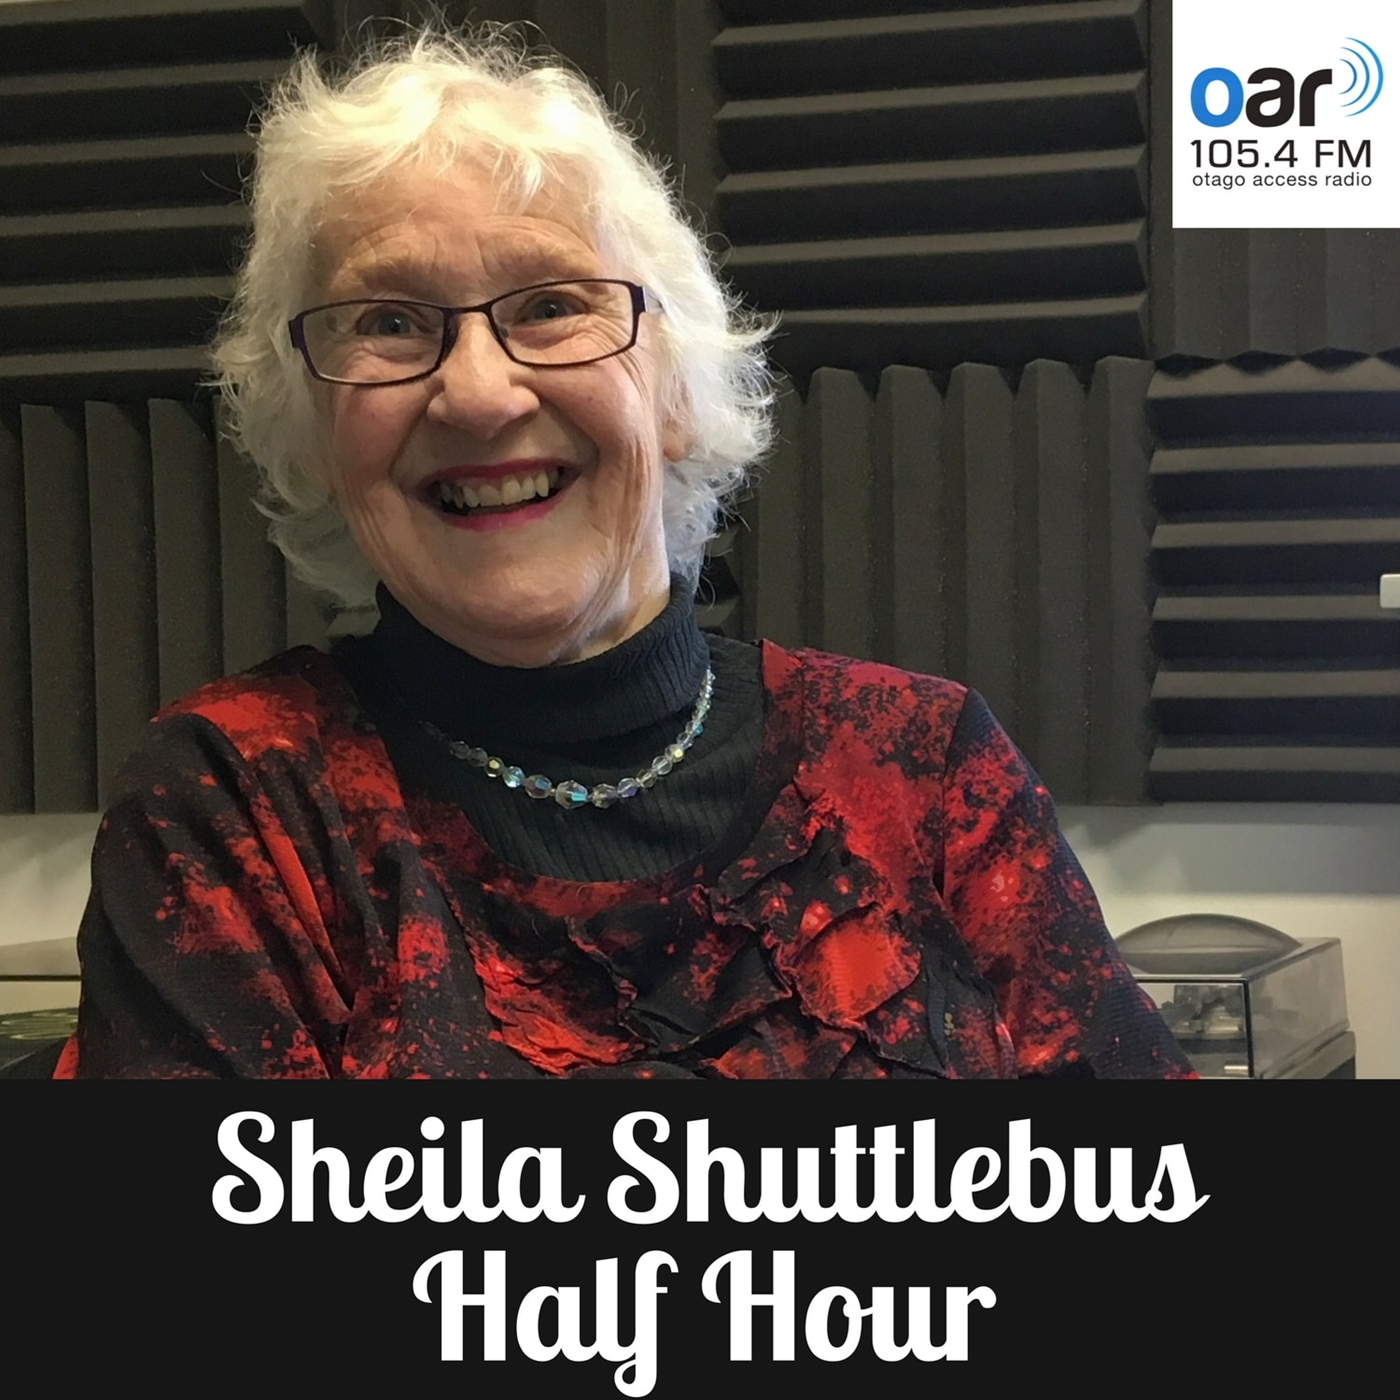 https://cdn.accessradio.org/StationFolder/otago/Images/PCST_Sheila.png